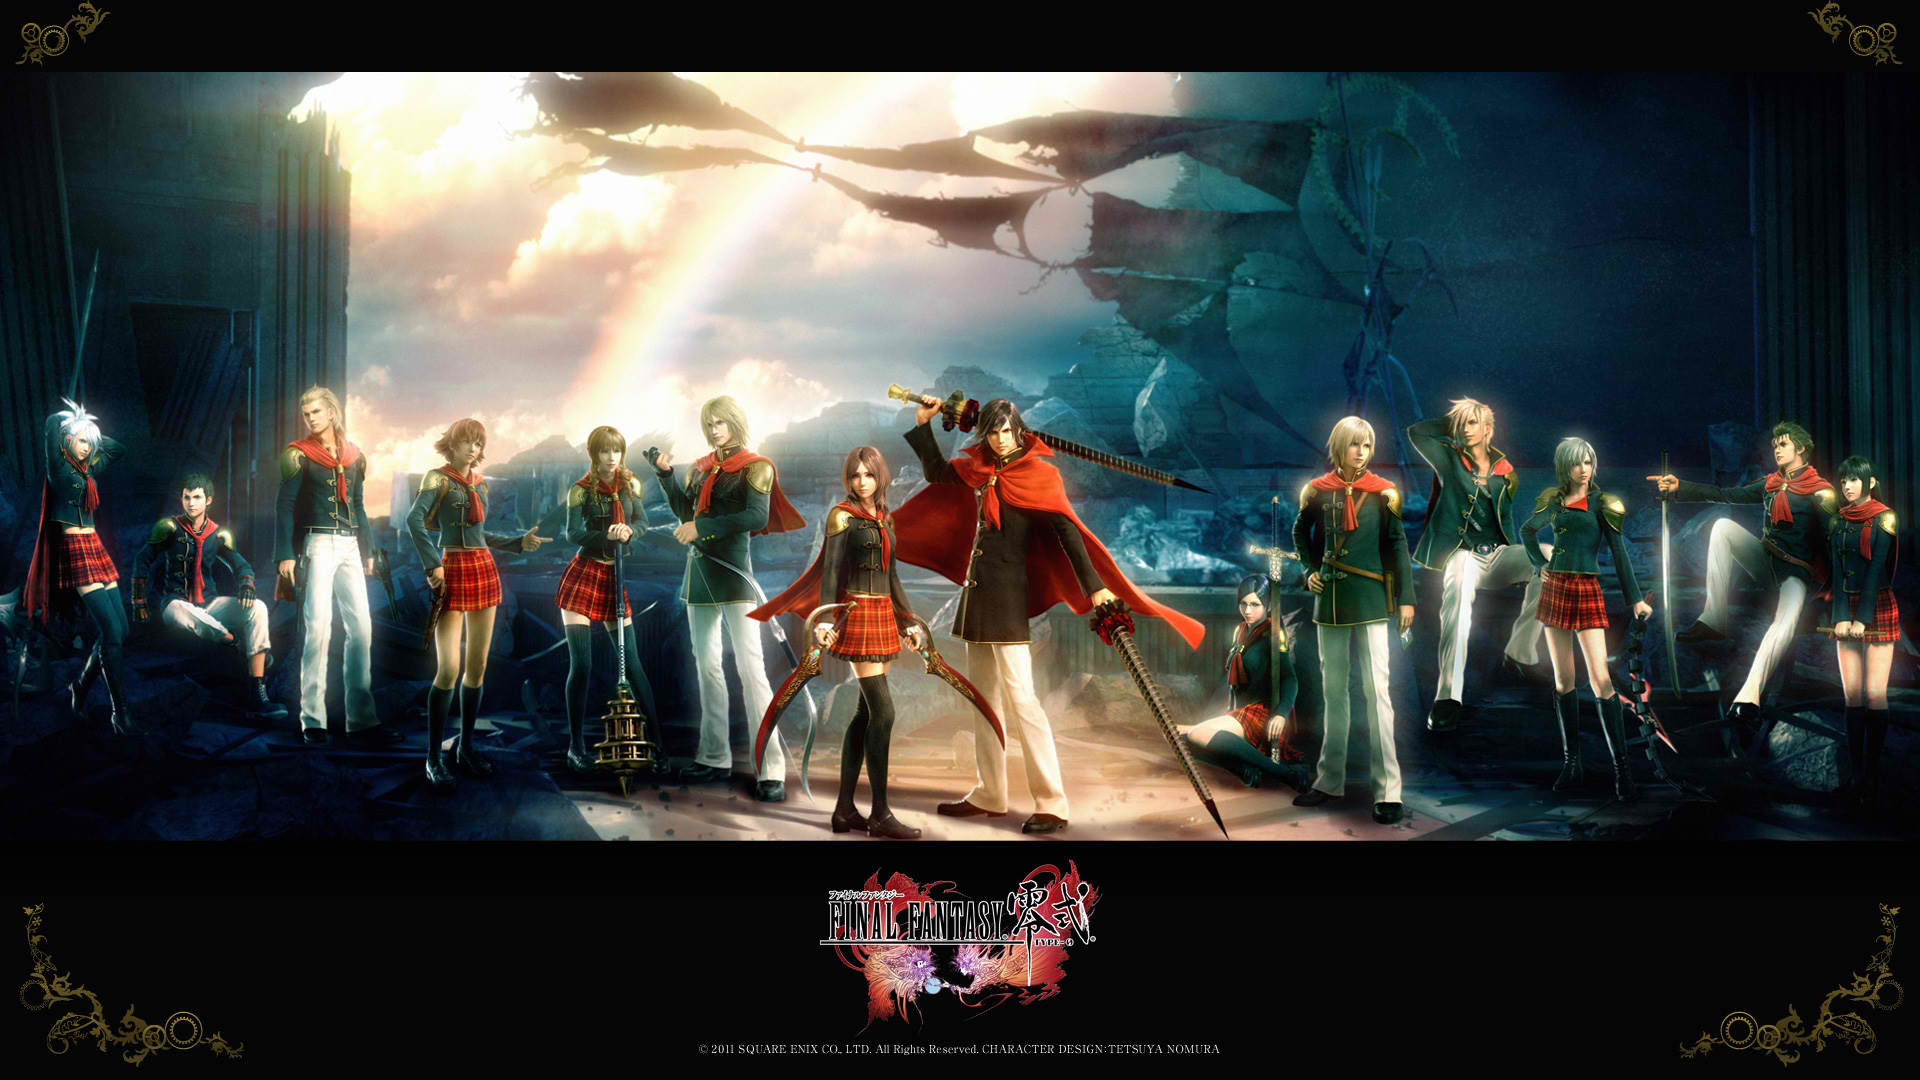 … viii images gf leviathan hd wallpaper and background; final fantasy  type 0 wallpapers final fantasy fxn network …